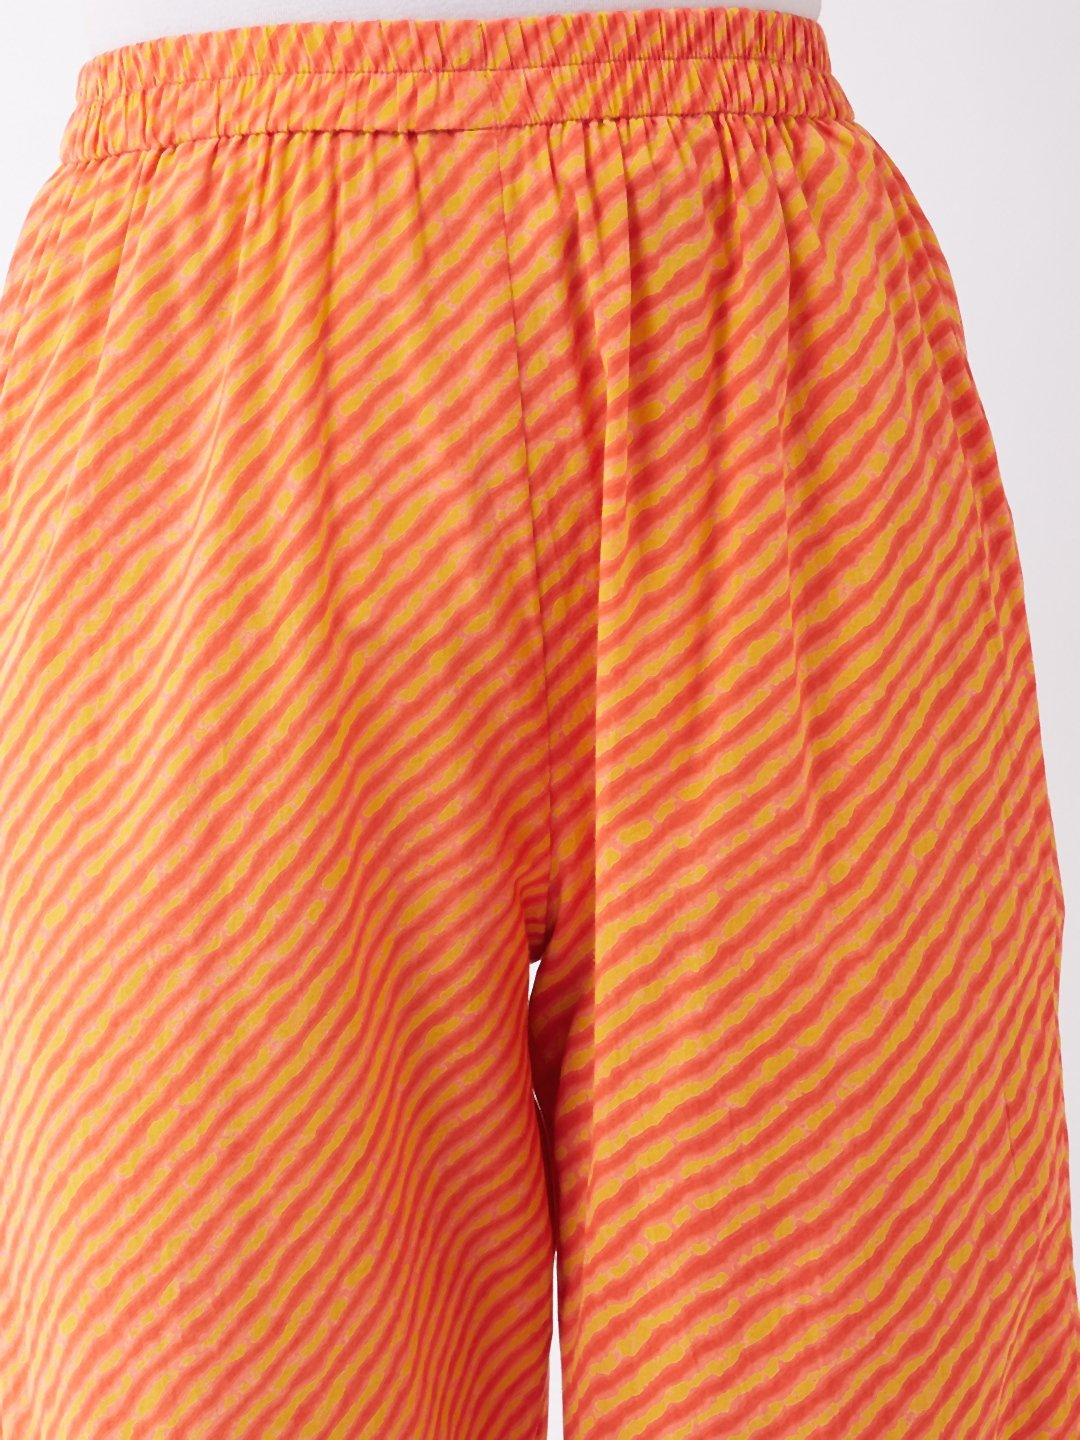 Orange Mustard Lahriya Pant